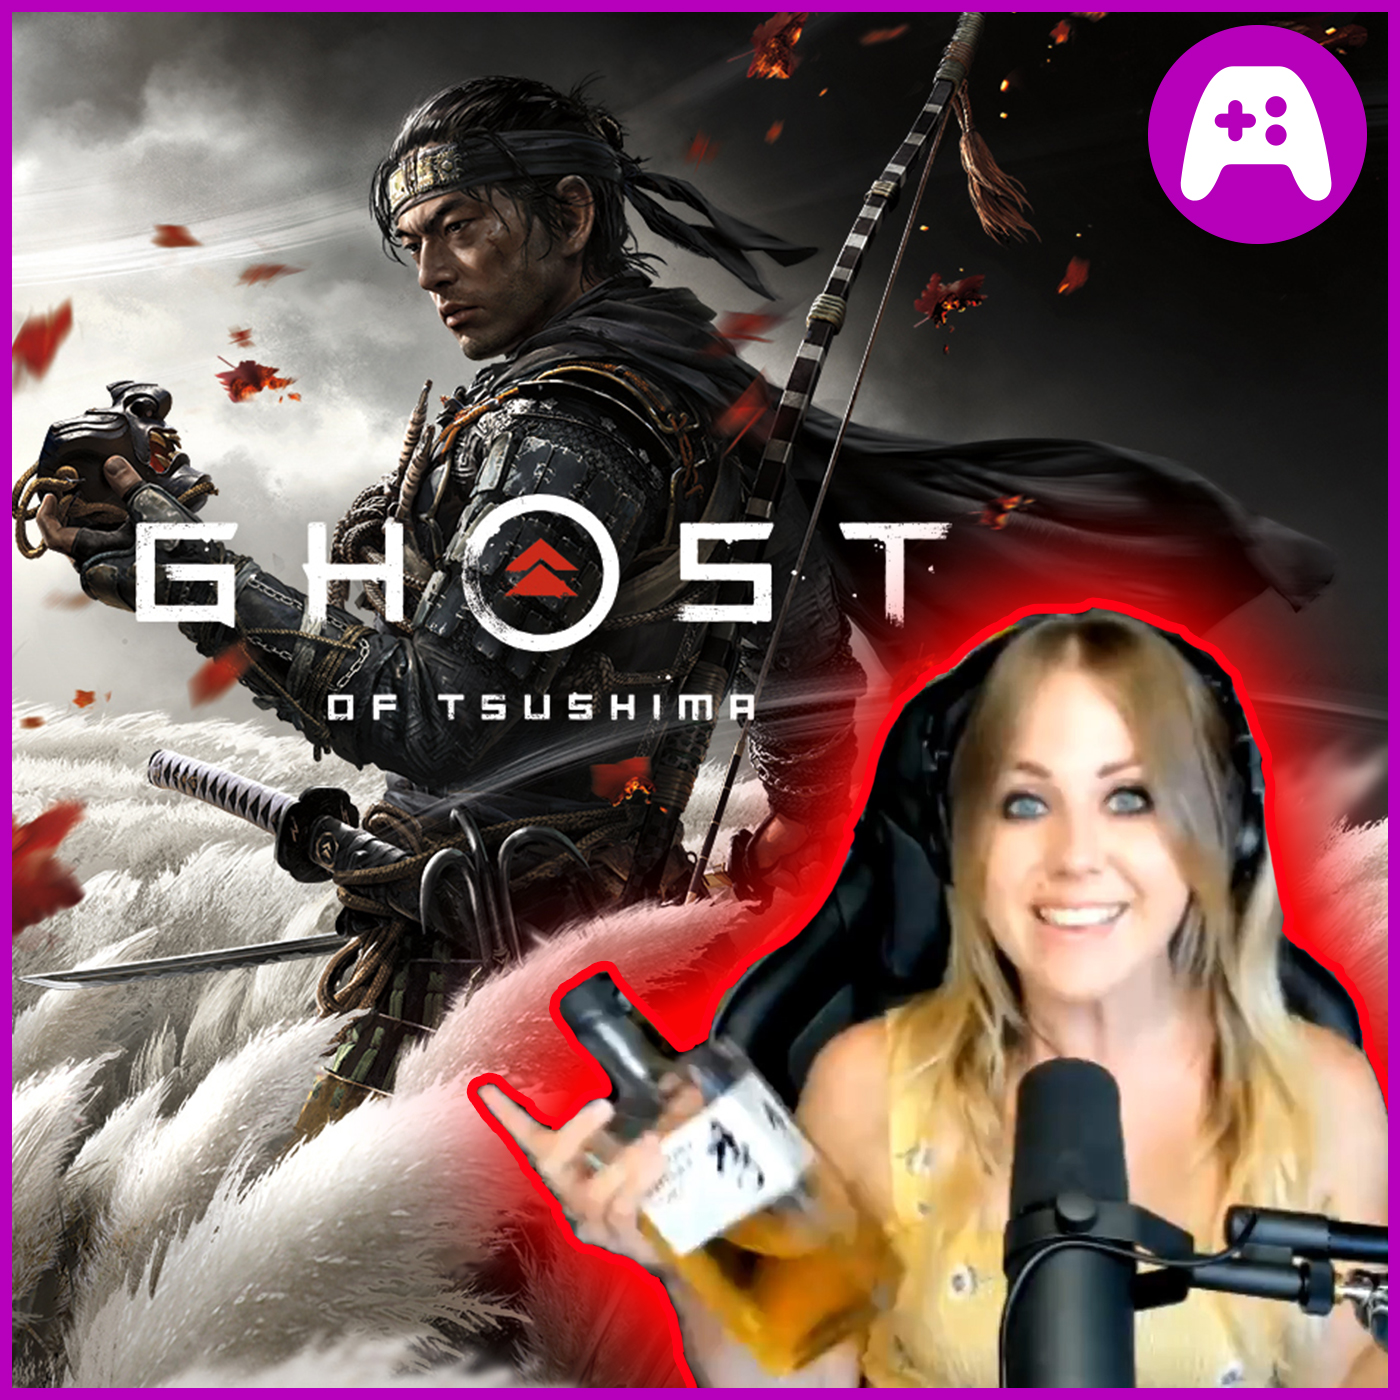 Ghost of Tsushima Extended Hands-On - What's Good Games (Ep. 174)